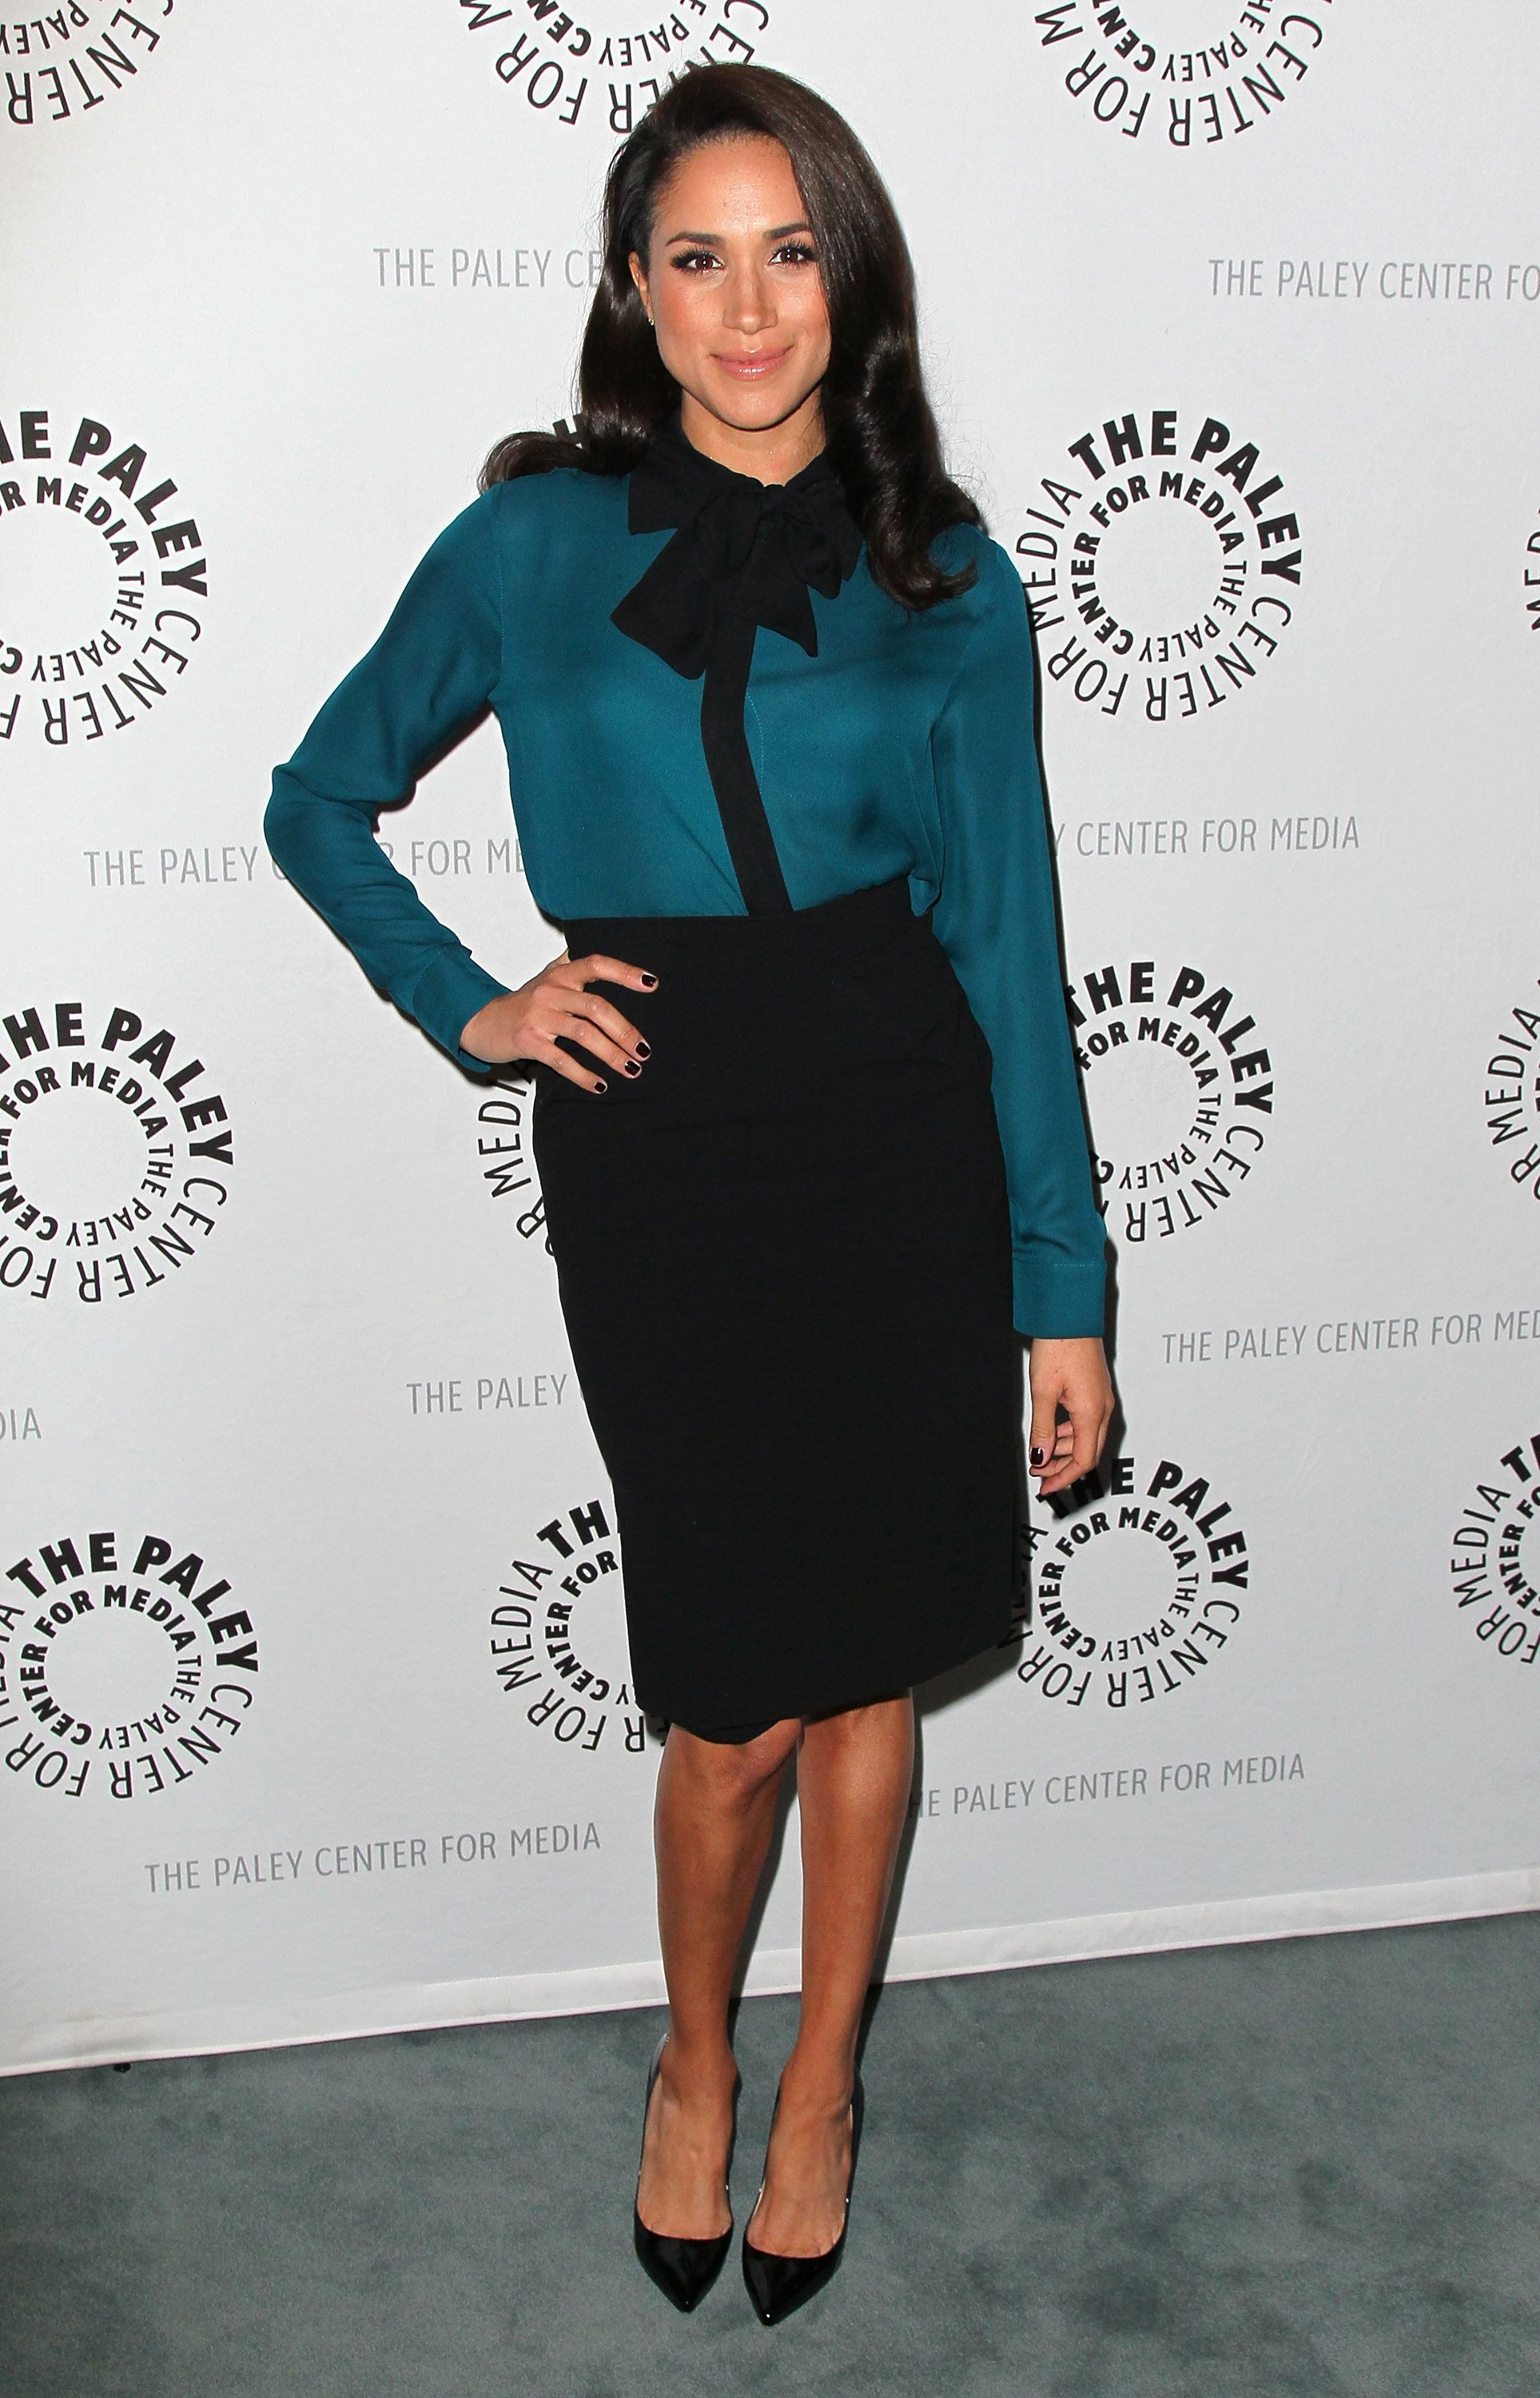 BEVERLY HILLS, CA - JANUARY 14:  Actress Meghan Markle attends The Paley Center for Media's presentation of An Evening With 'Suits'  at The Paley Center for Media on January 14, 2013 in Beverly Hills, California.  (Photo by David Livingston/Getty Images)